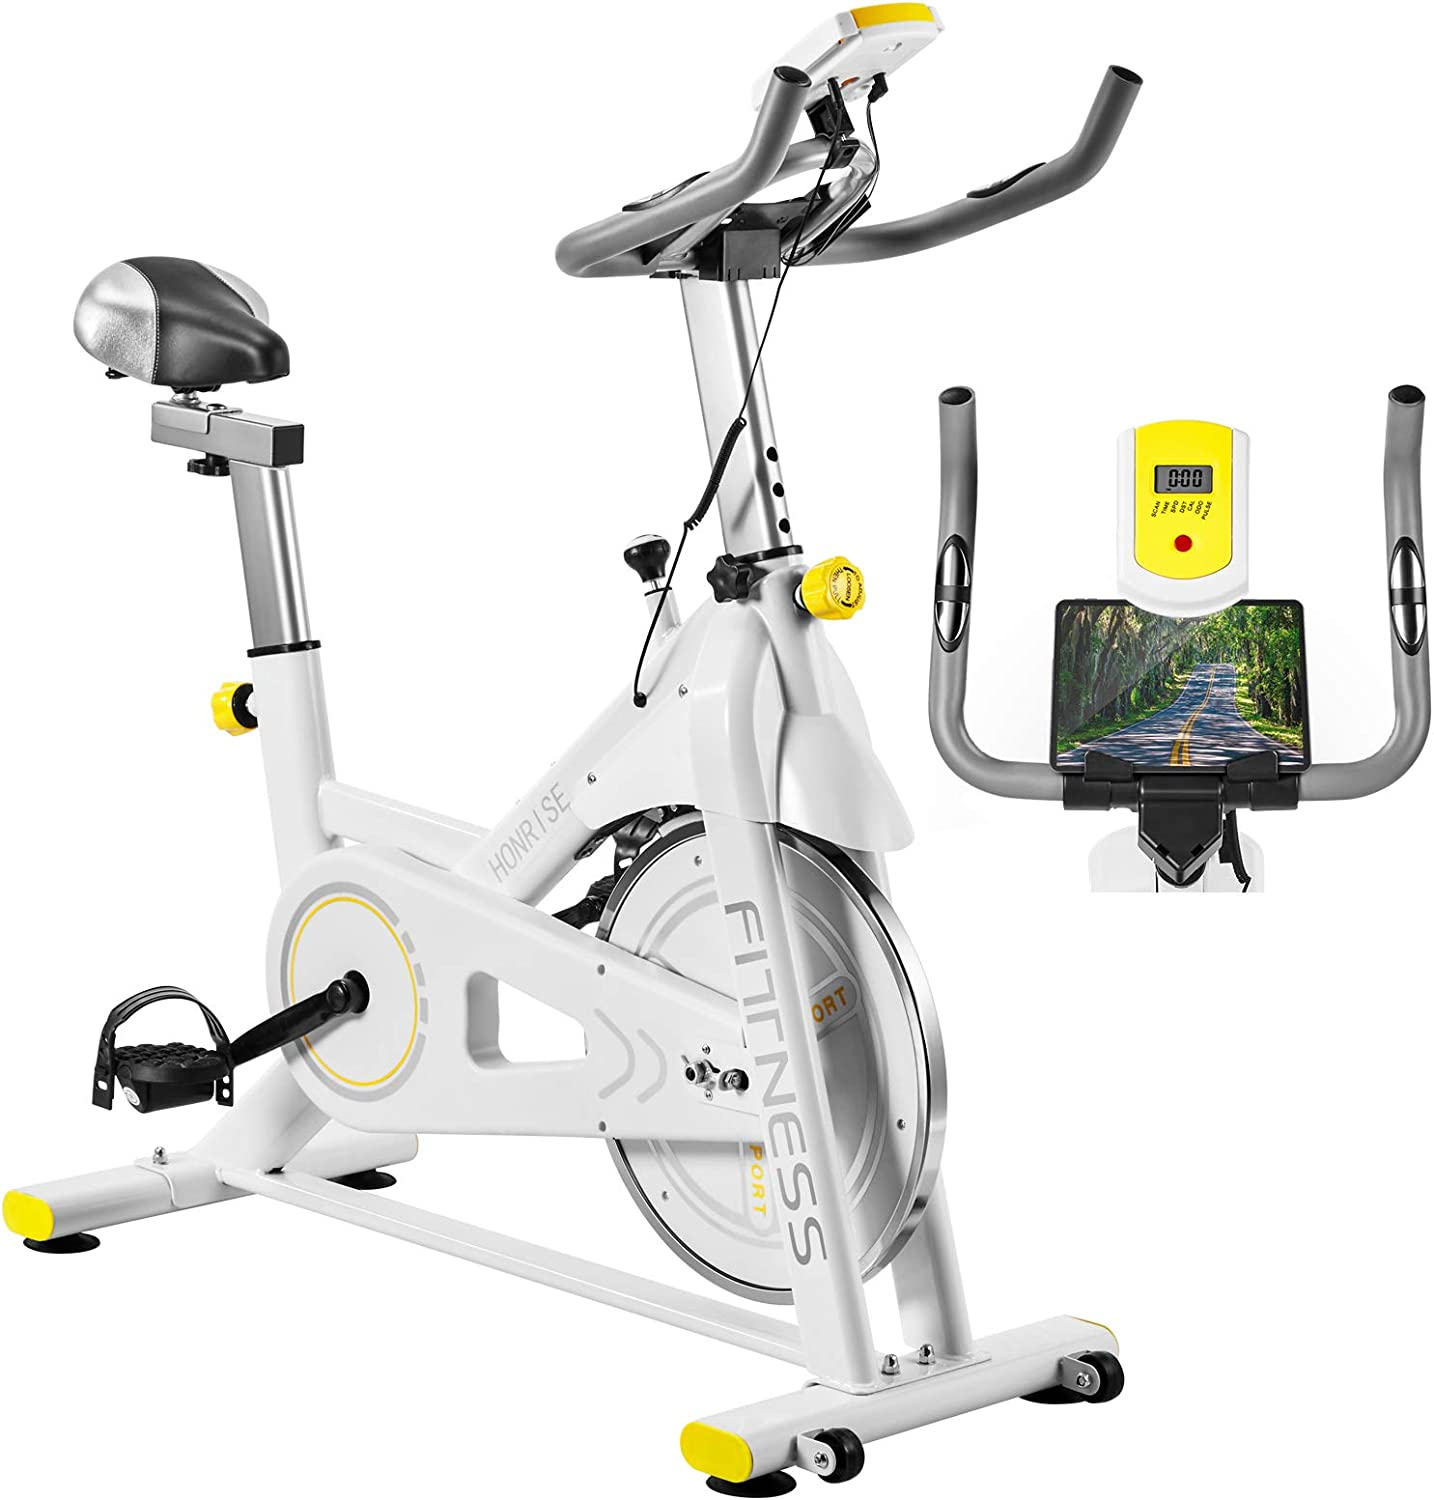 71Hi0M9%2BczL. AC SL1500 The Best Spin Exercise Bikes under $300 in 2021 Reviews